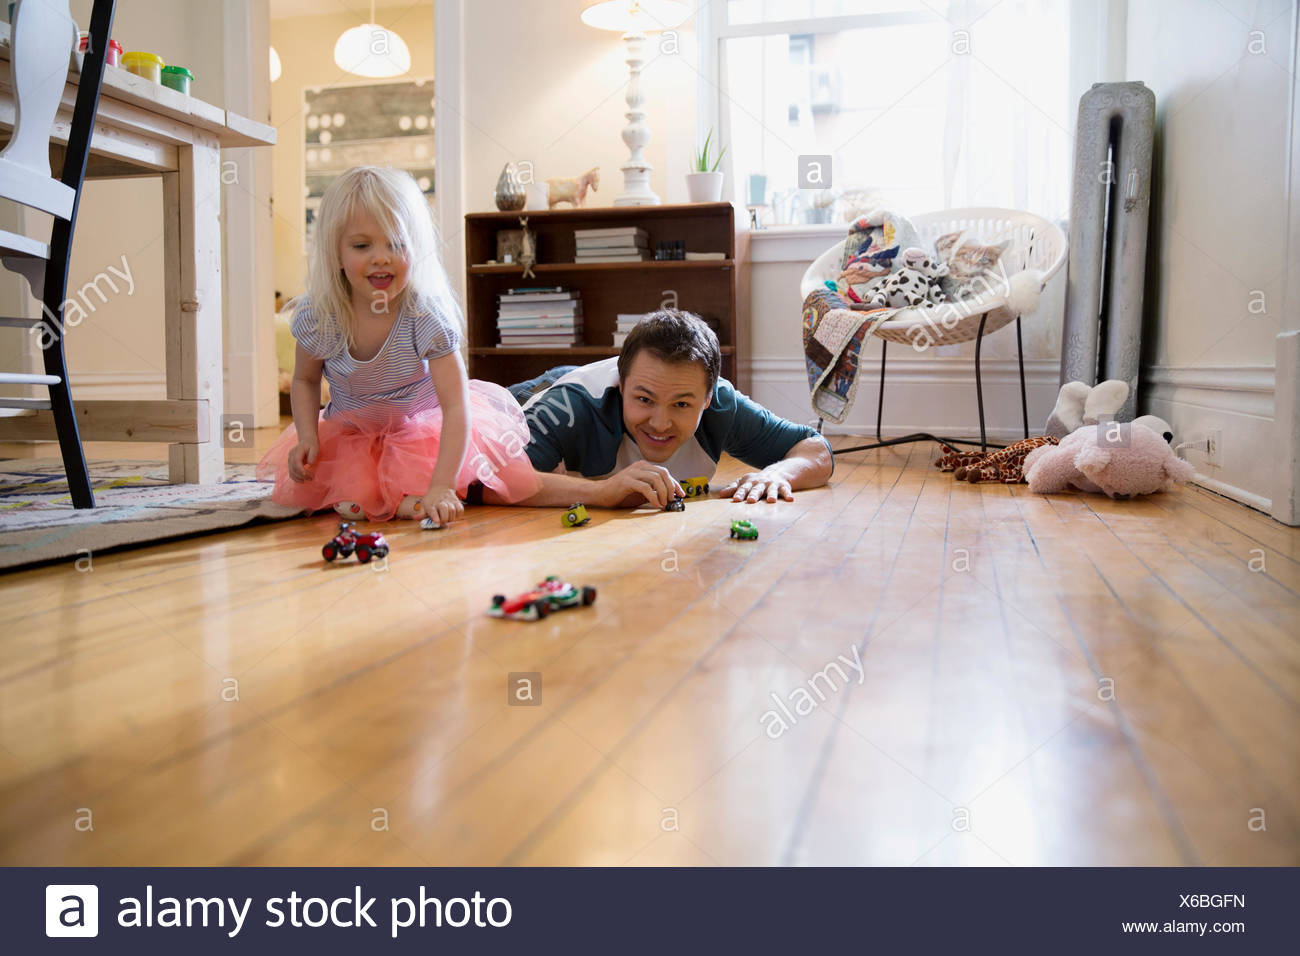 Father and daughter racing toy cars on floor - Stock Image